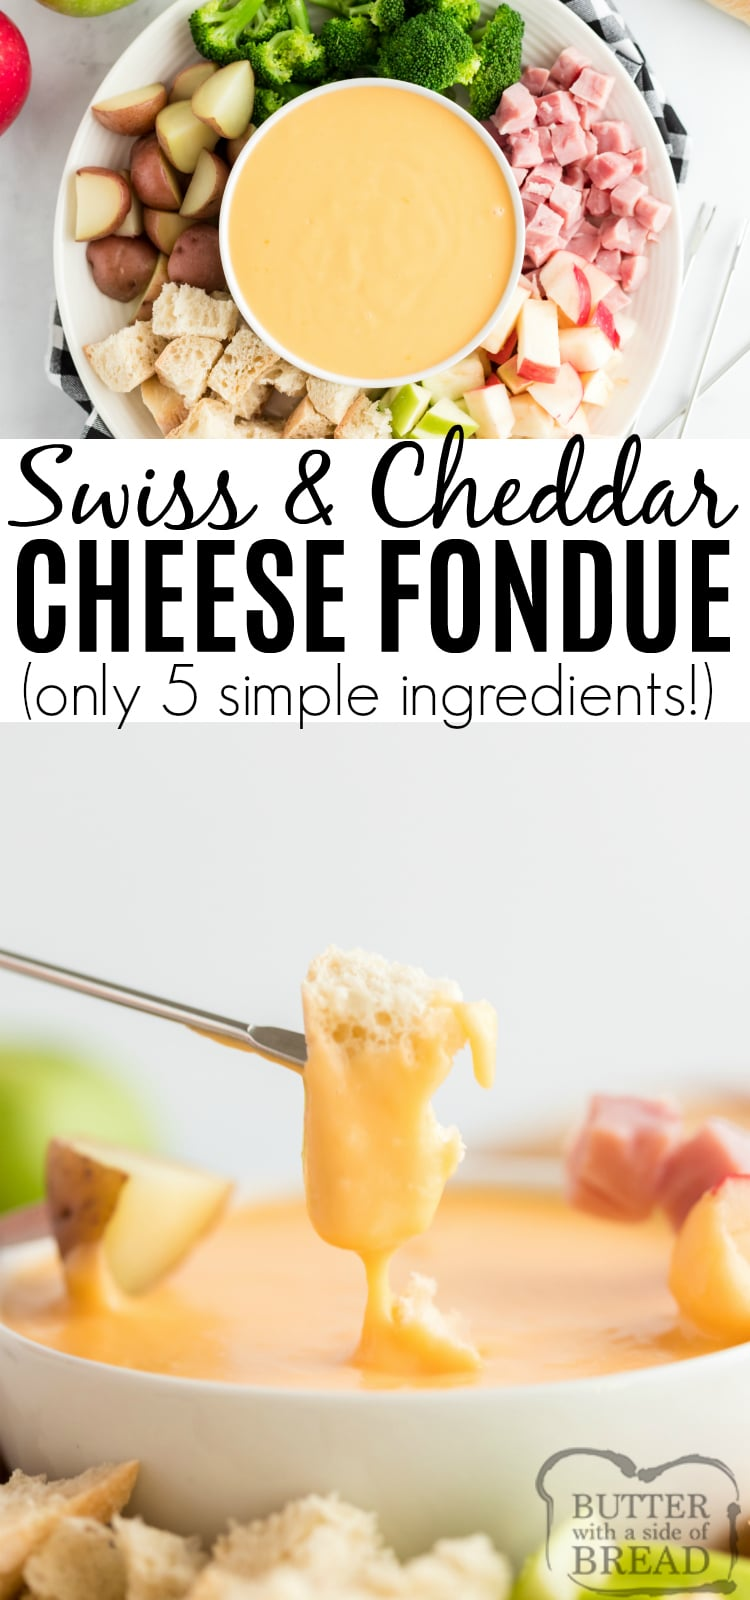 Swiss & Cheddar Cheese fondue is an easy appetizer recipe that is perfect for holiday dinners, parties and family gatherings! This delicious fondue recipe comes together in just a few minutes with a few simple ingredients - it is so easy to make and everyone loves it!